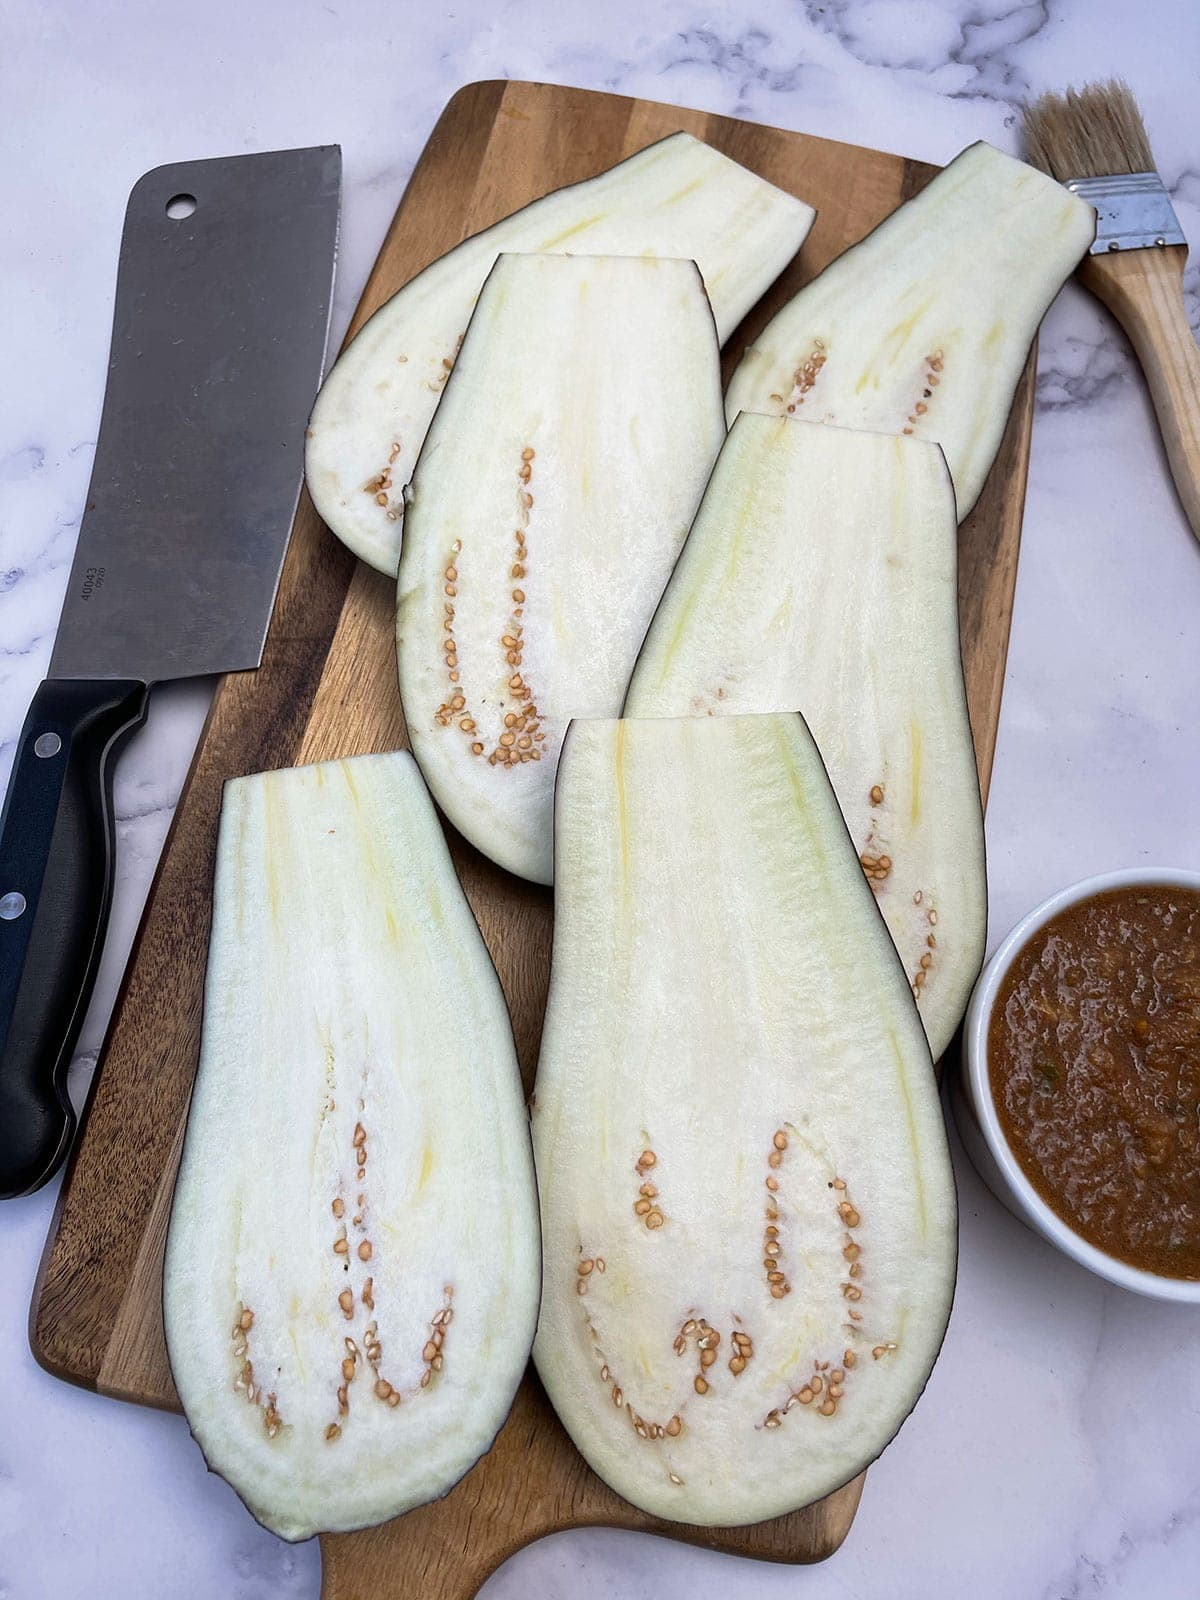 eggplant slices on a cutting board on a white background with a cleaver knife on the side